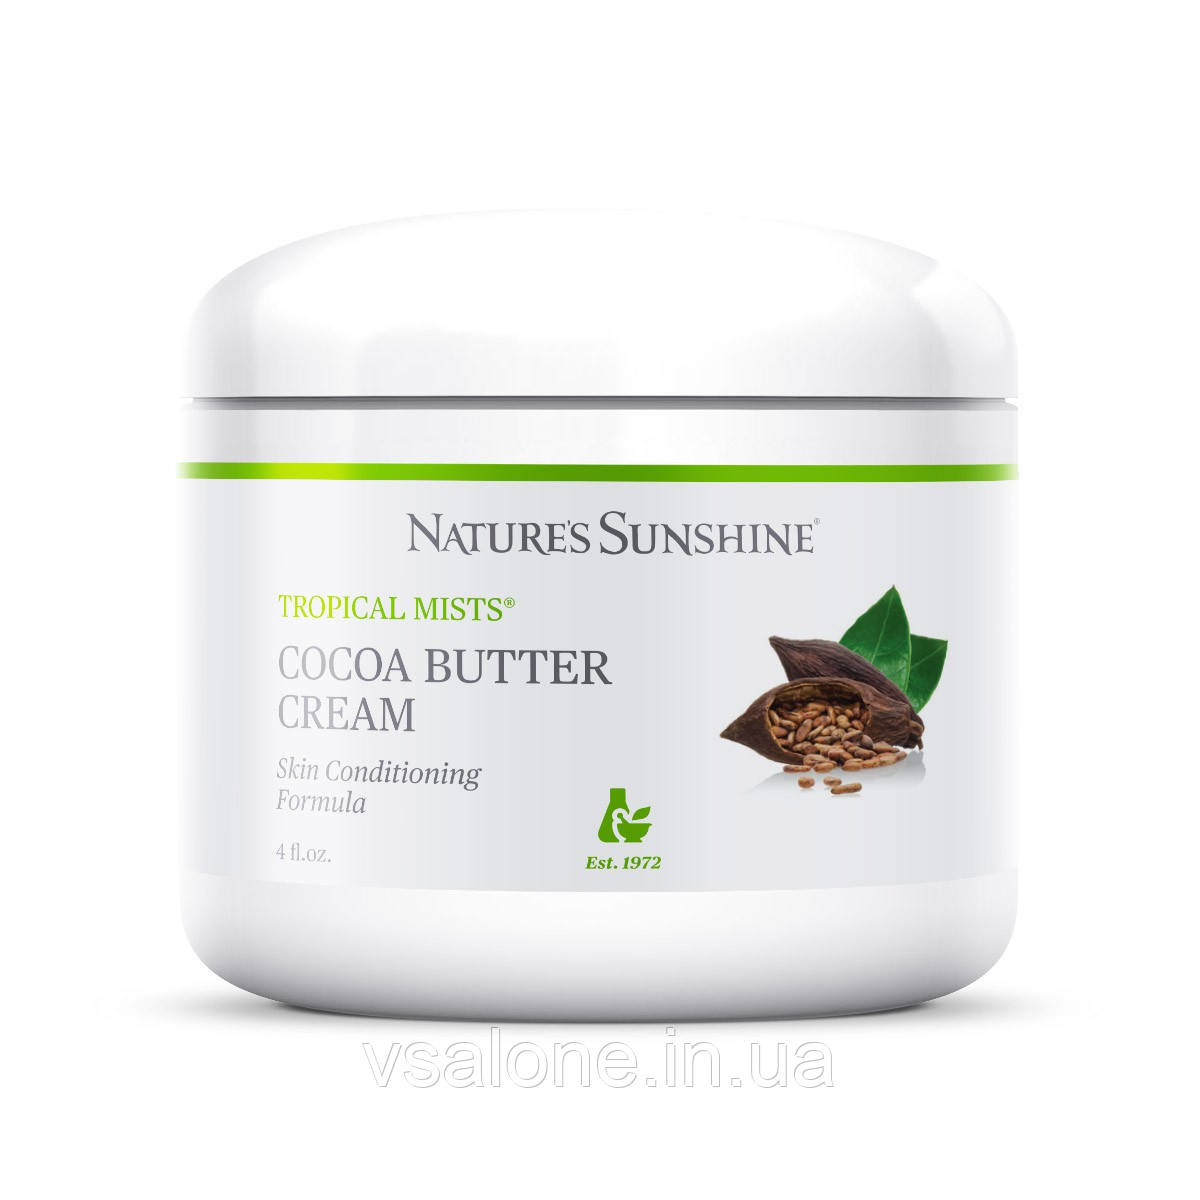 Cocoa Butter Cream NSP Крем с маслом какао питательный для лица и тела НСП